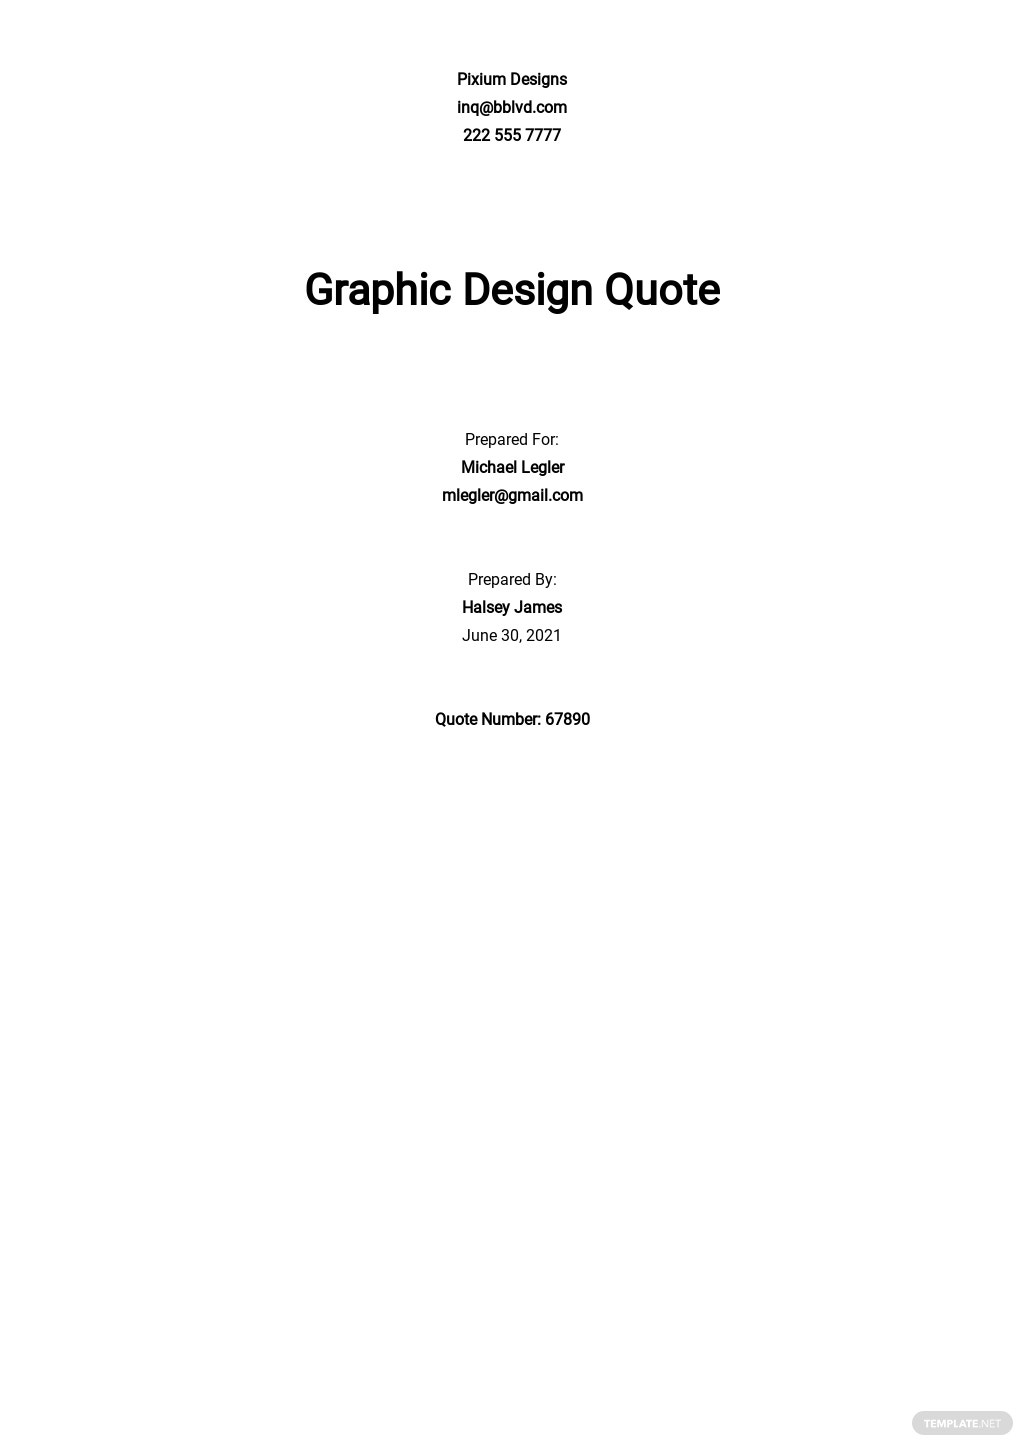 Small Business Quotation Template.jpe